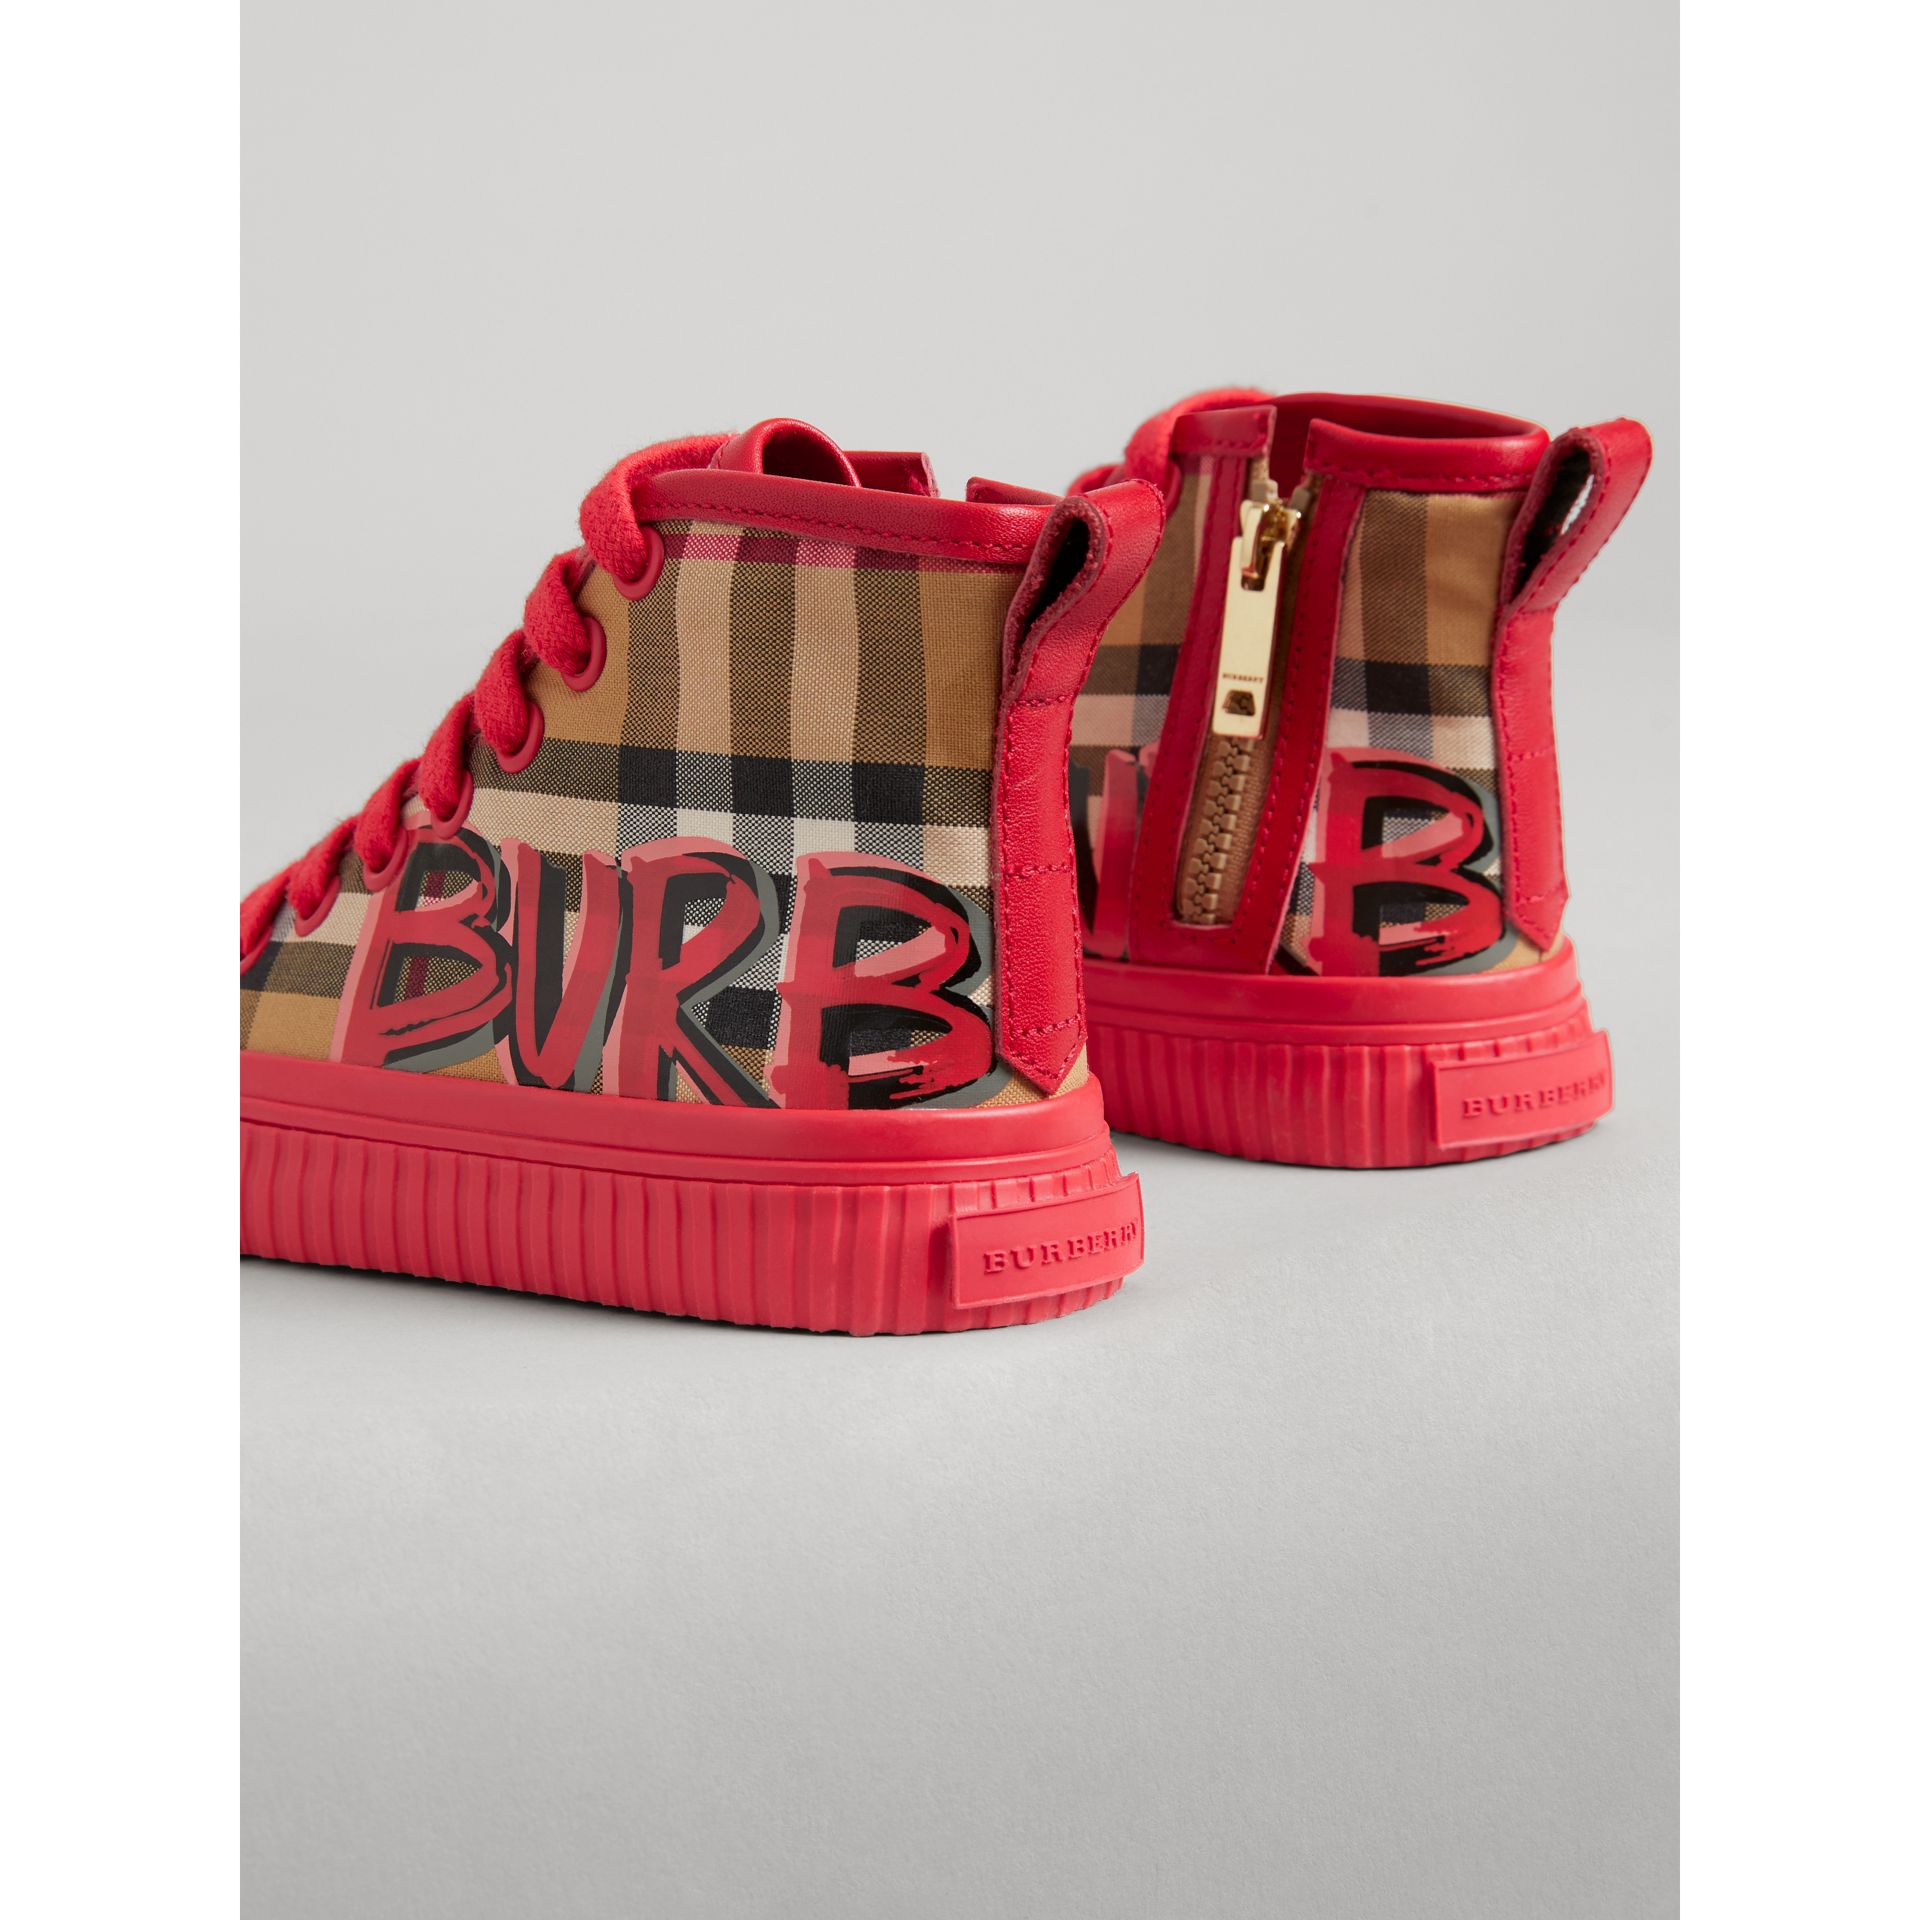 Graffiti Vintage Check High-top Sneakers in Bright Red - Children | Burberry Australia - gallery image 2